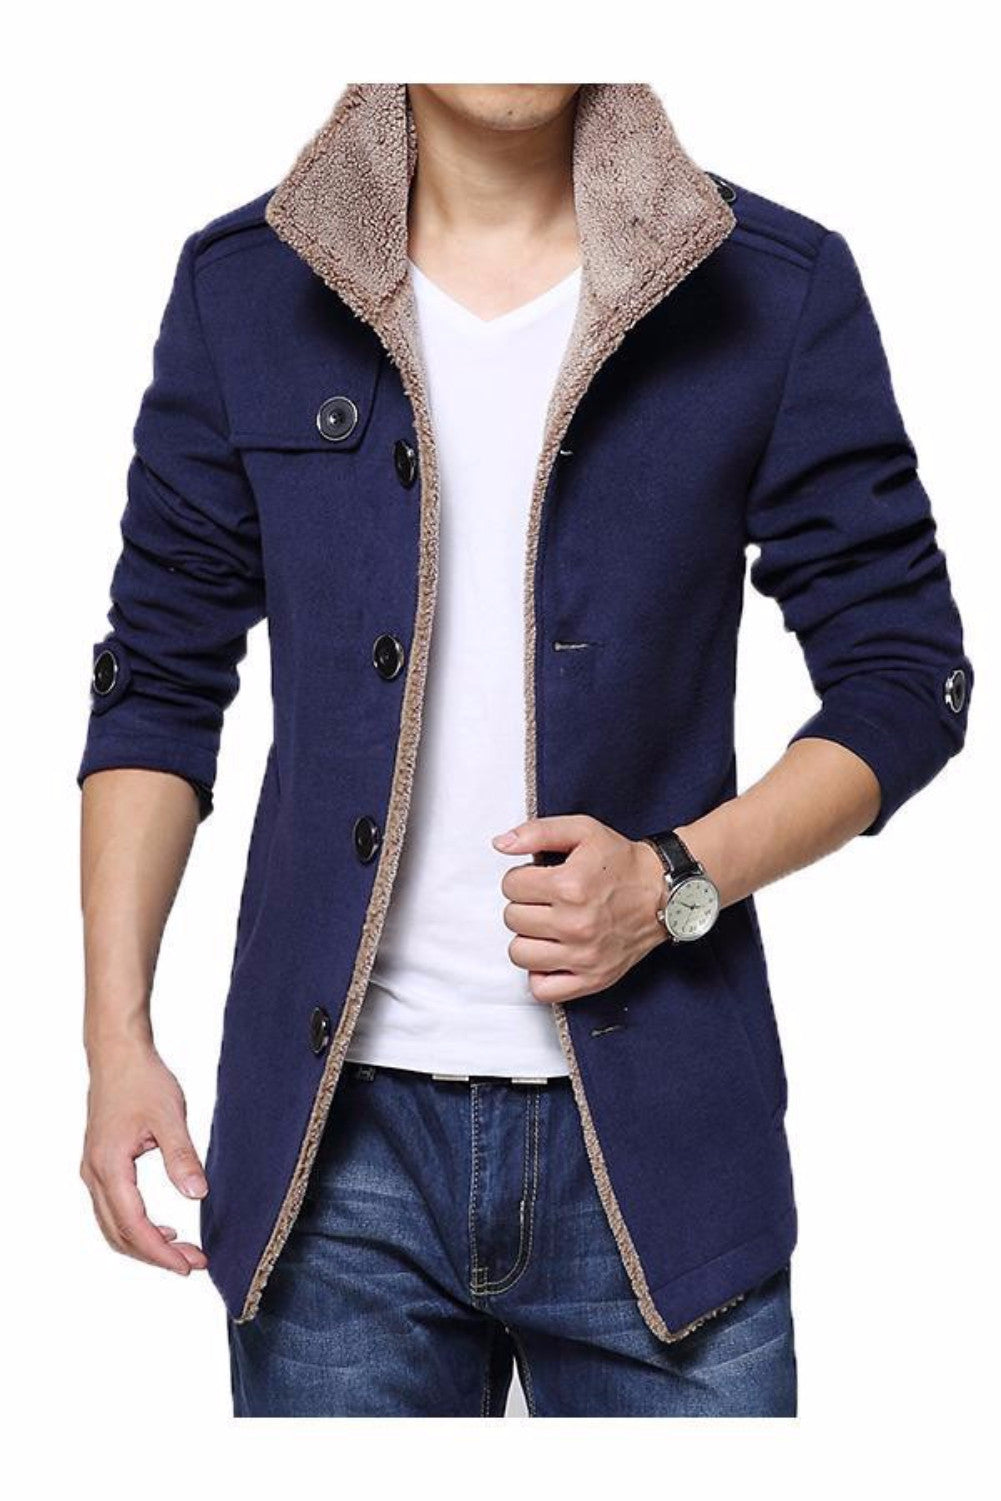 2015 New Arrival Trench Coat Men Casual Slim Fit Jacket Autumn Winter Fur Collar Windbreaker Jackets and Coats Men Plus Size 4XL